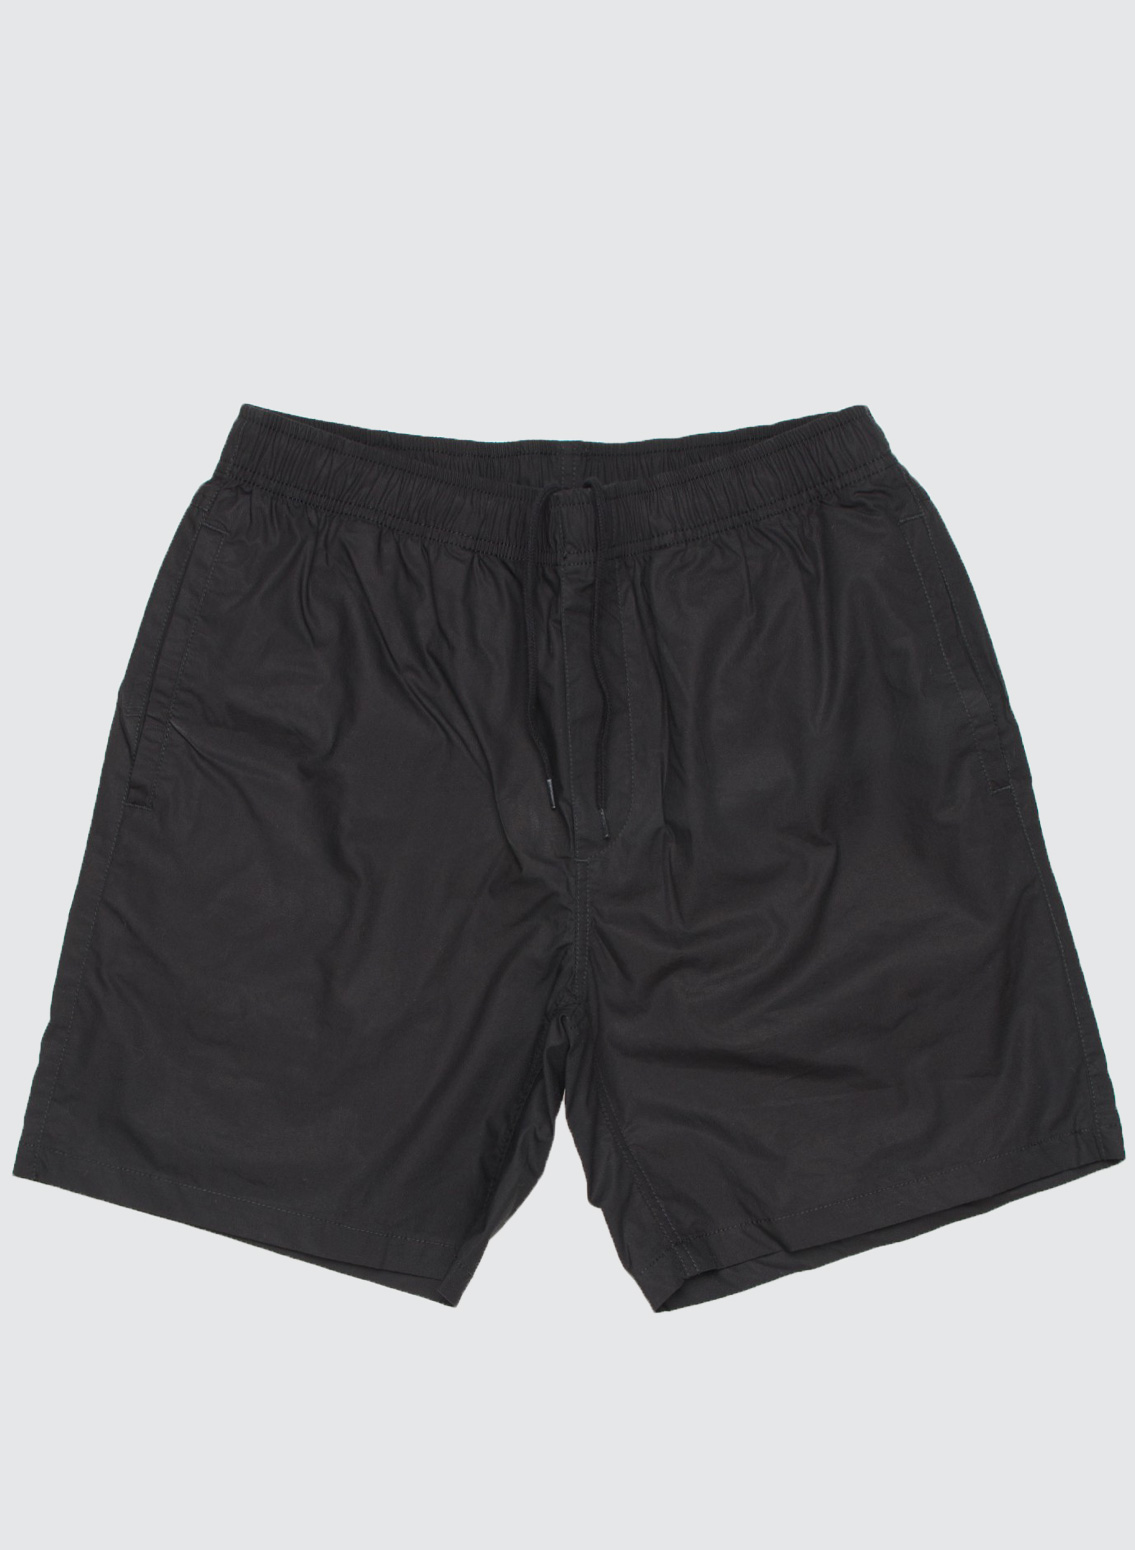 5903 Beach Shorts Business Image Group